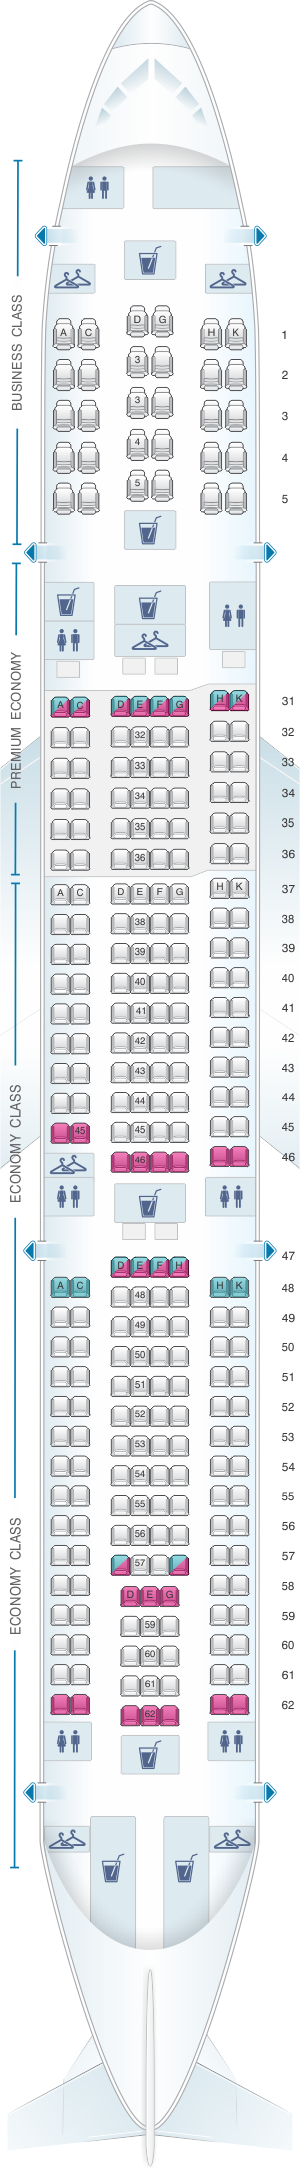 Seat map for China Southern Airlines Airbus A330-300 Layout B